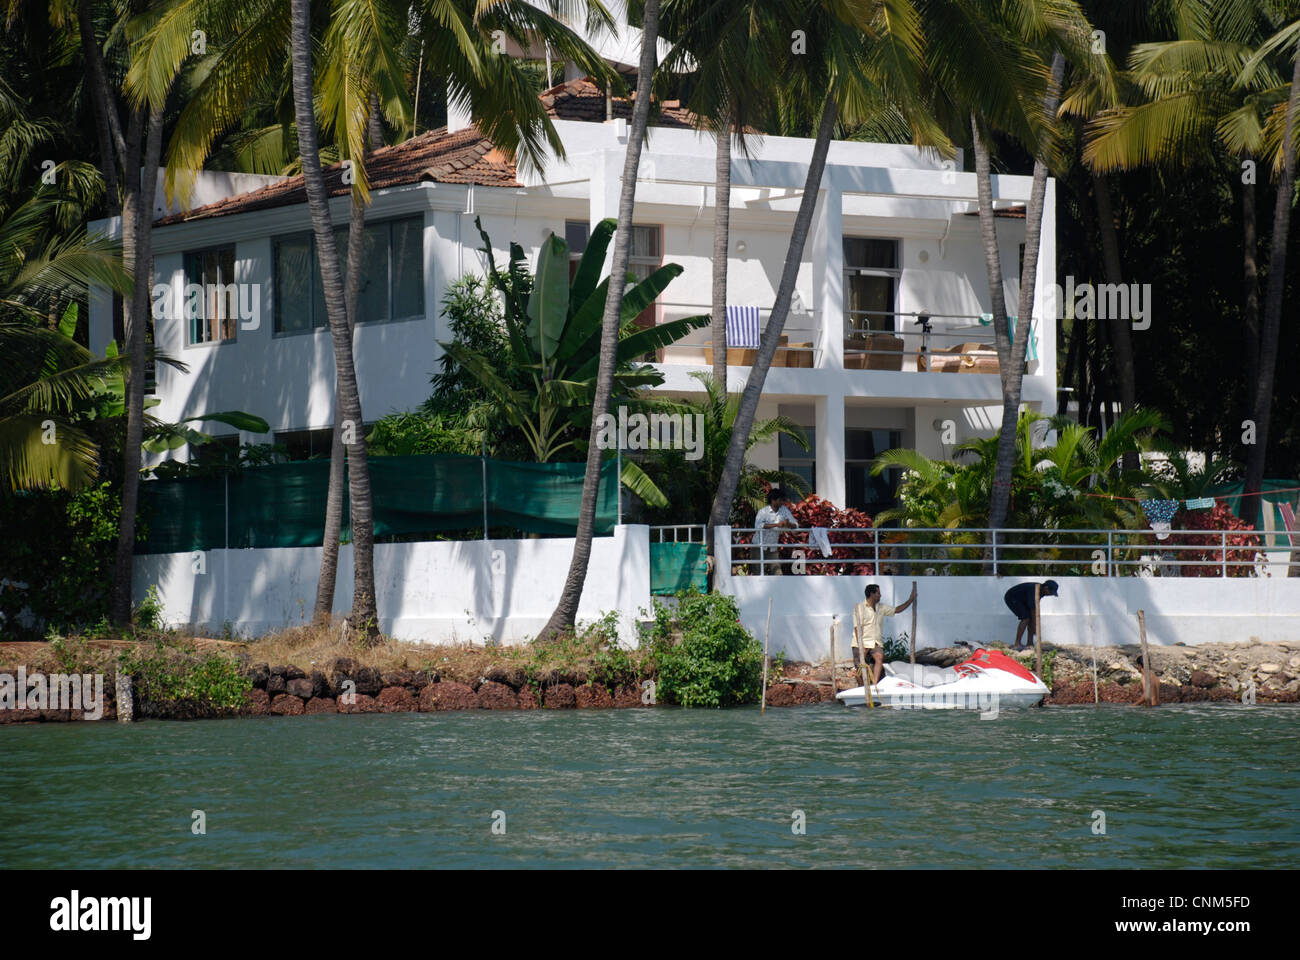 A wealthy riverside home in Goa, India - Stock Image